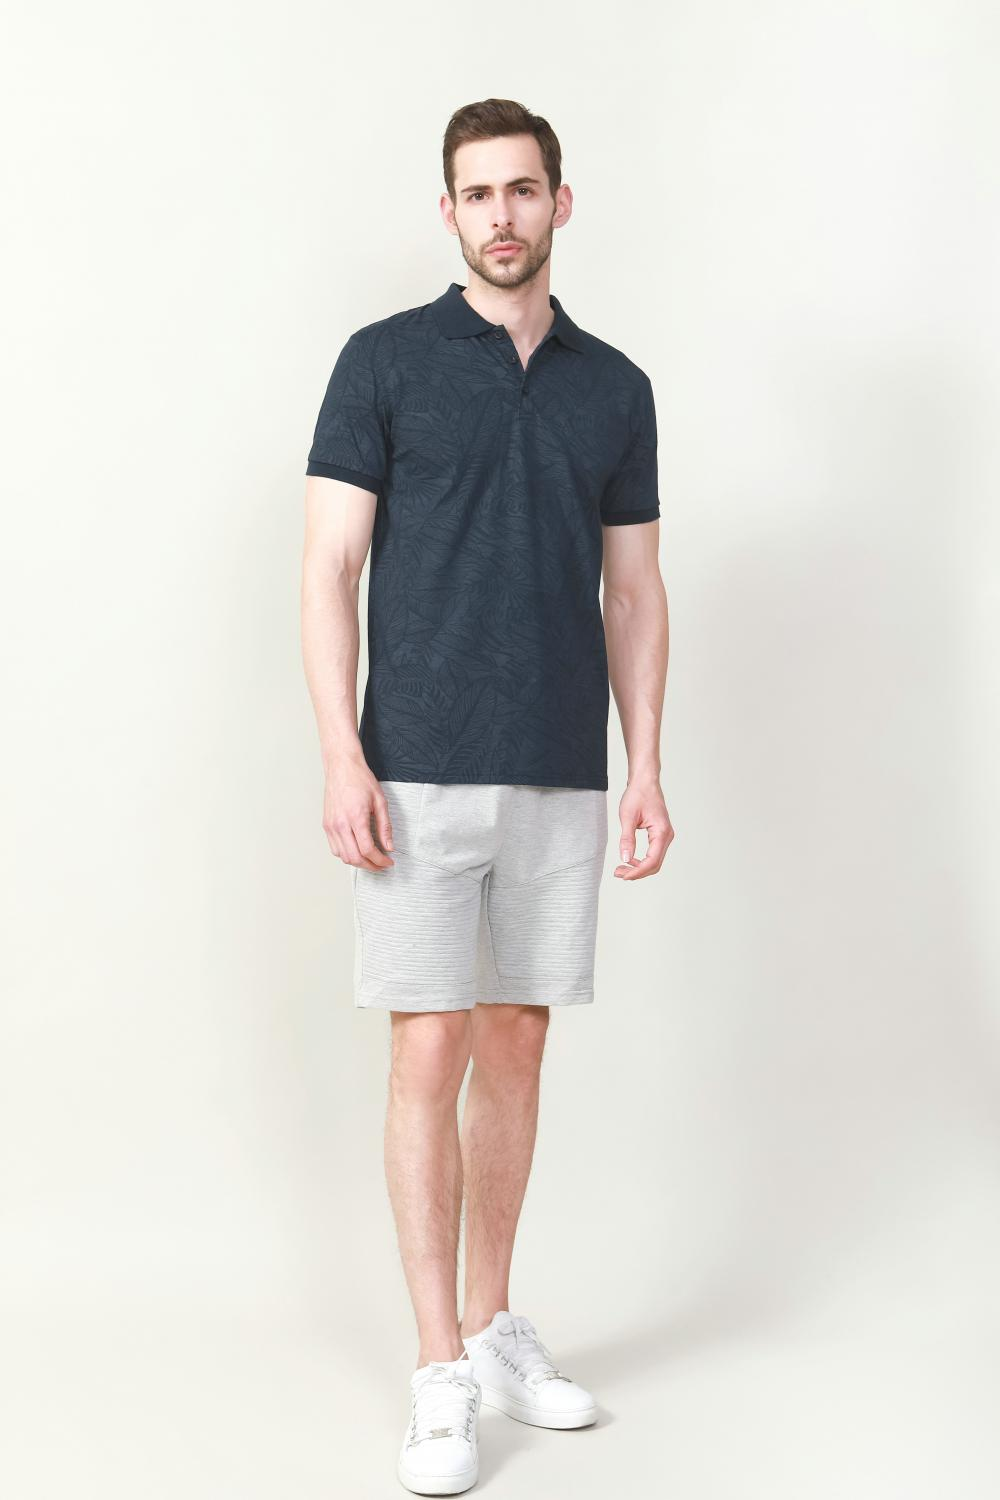 Men's knit short